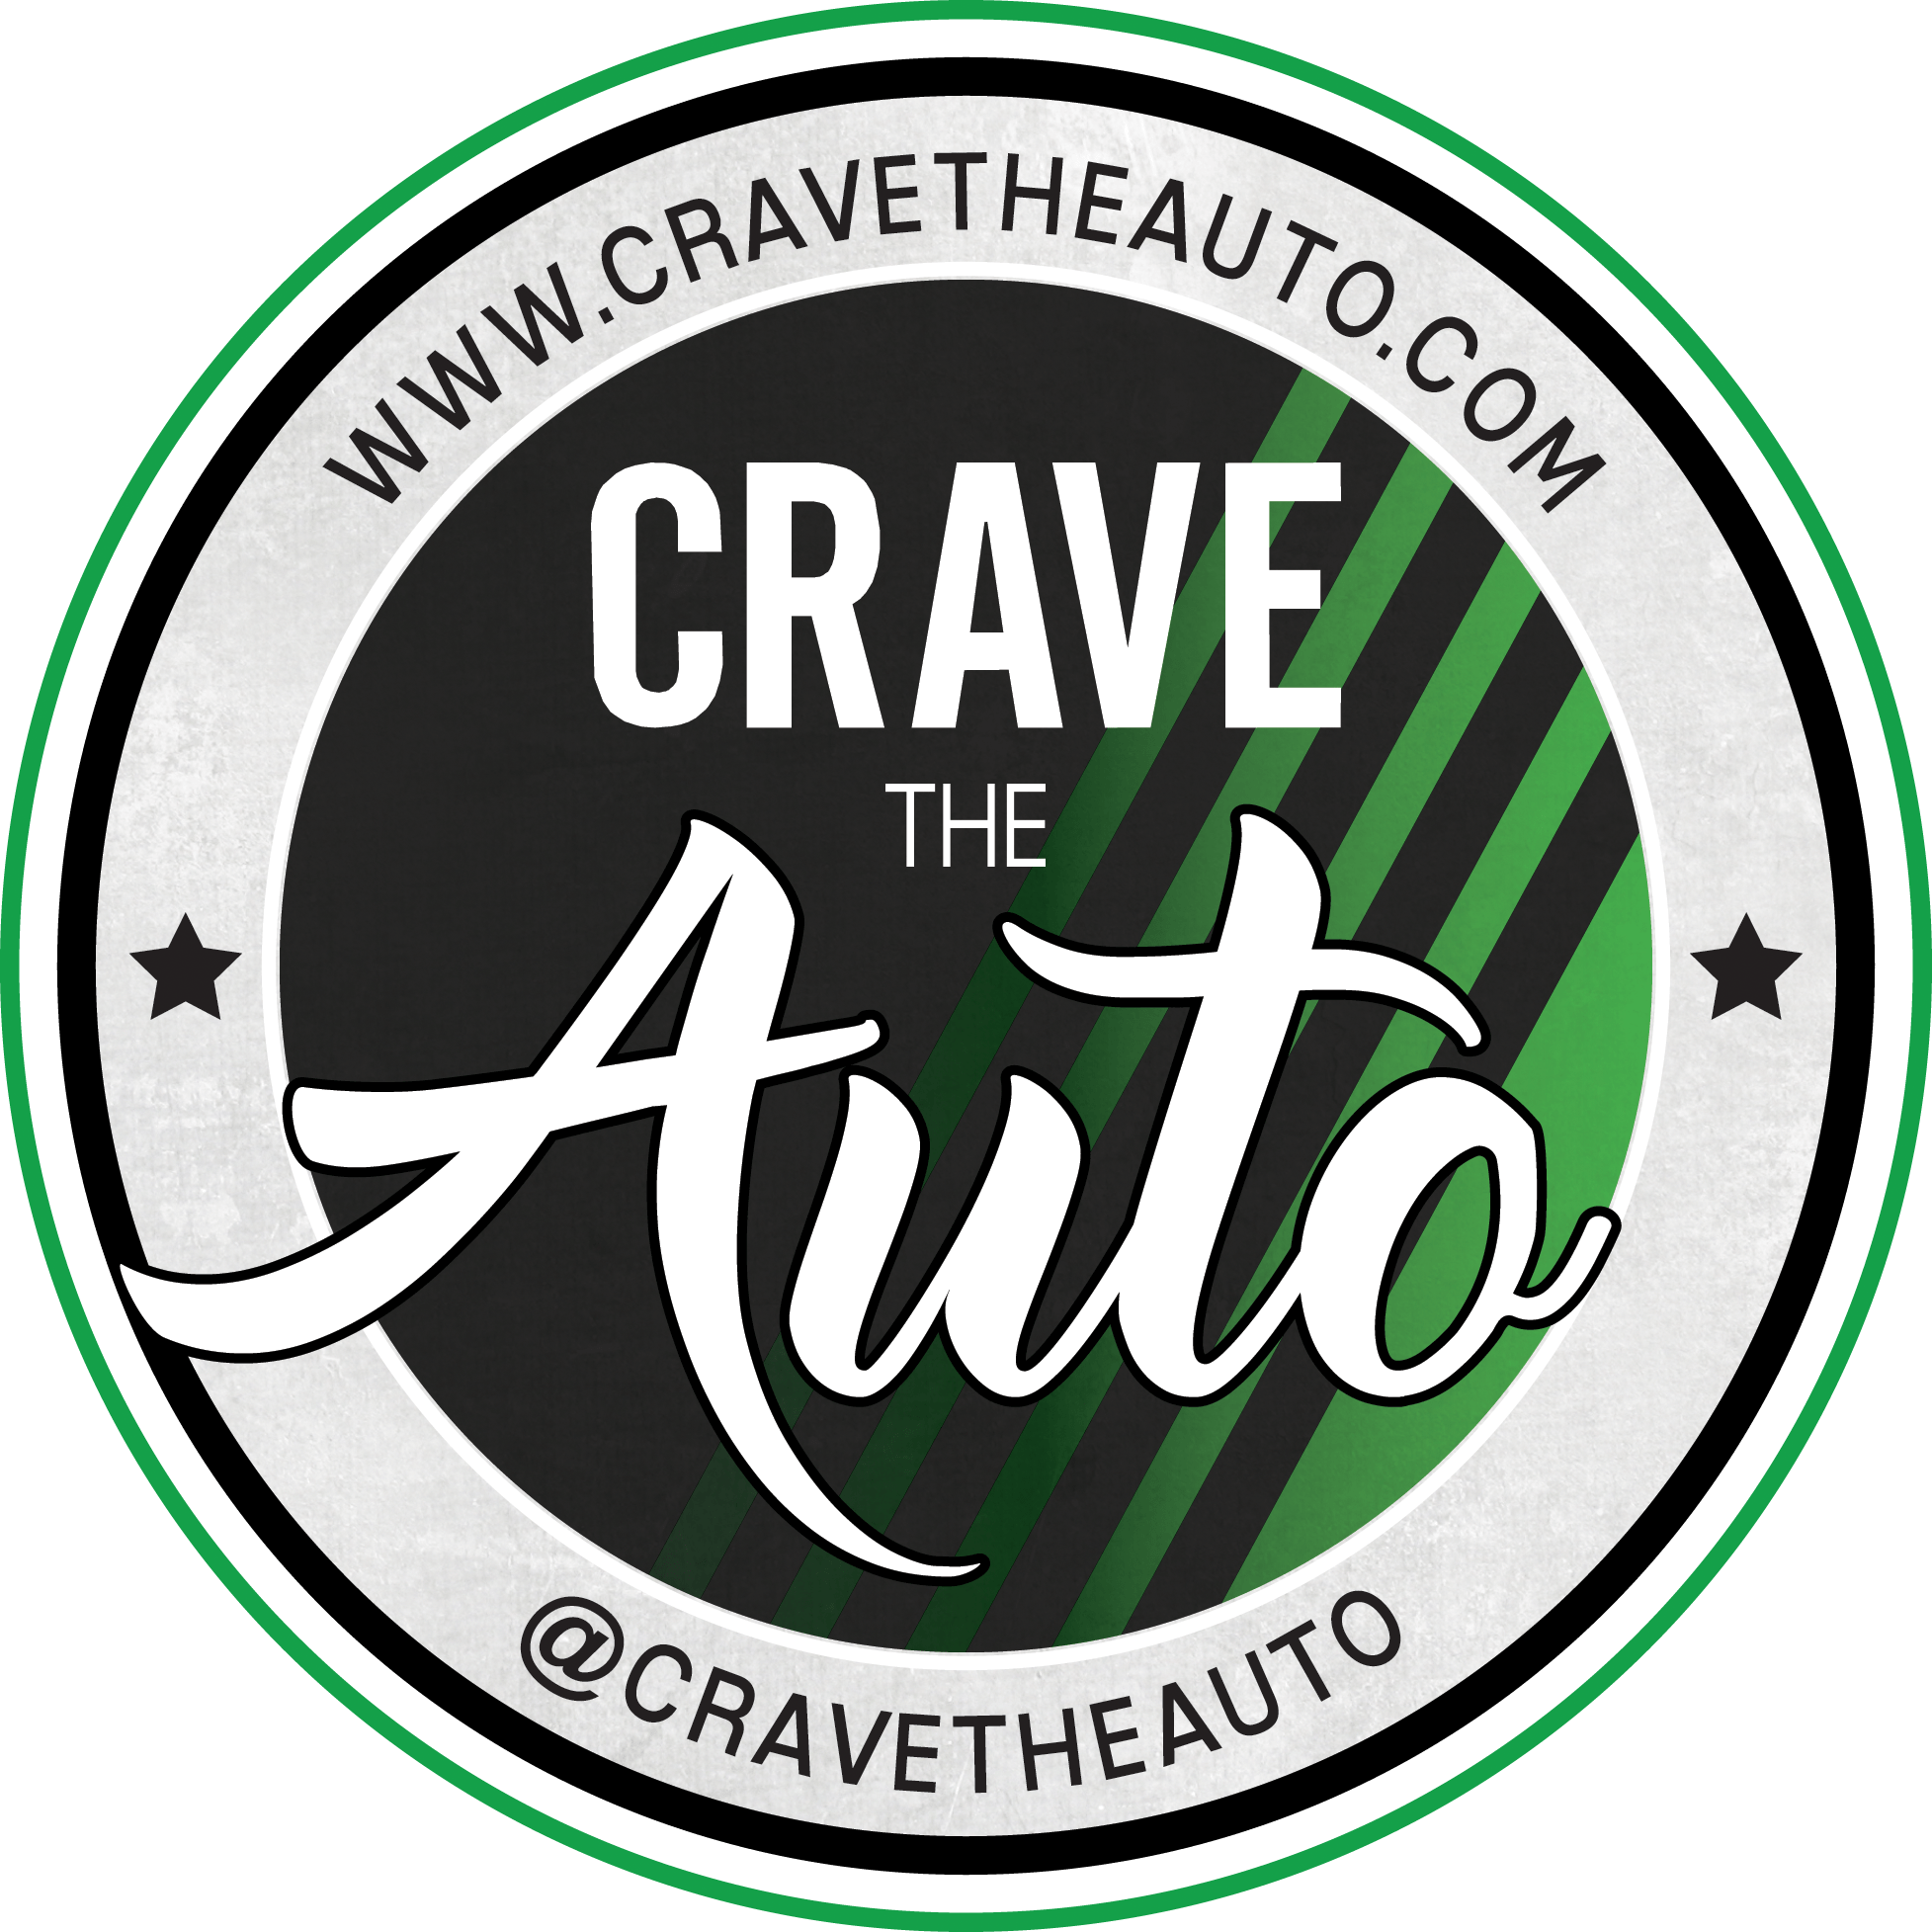 All Autograph Signings Crave The Auto